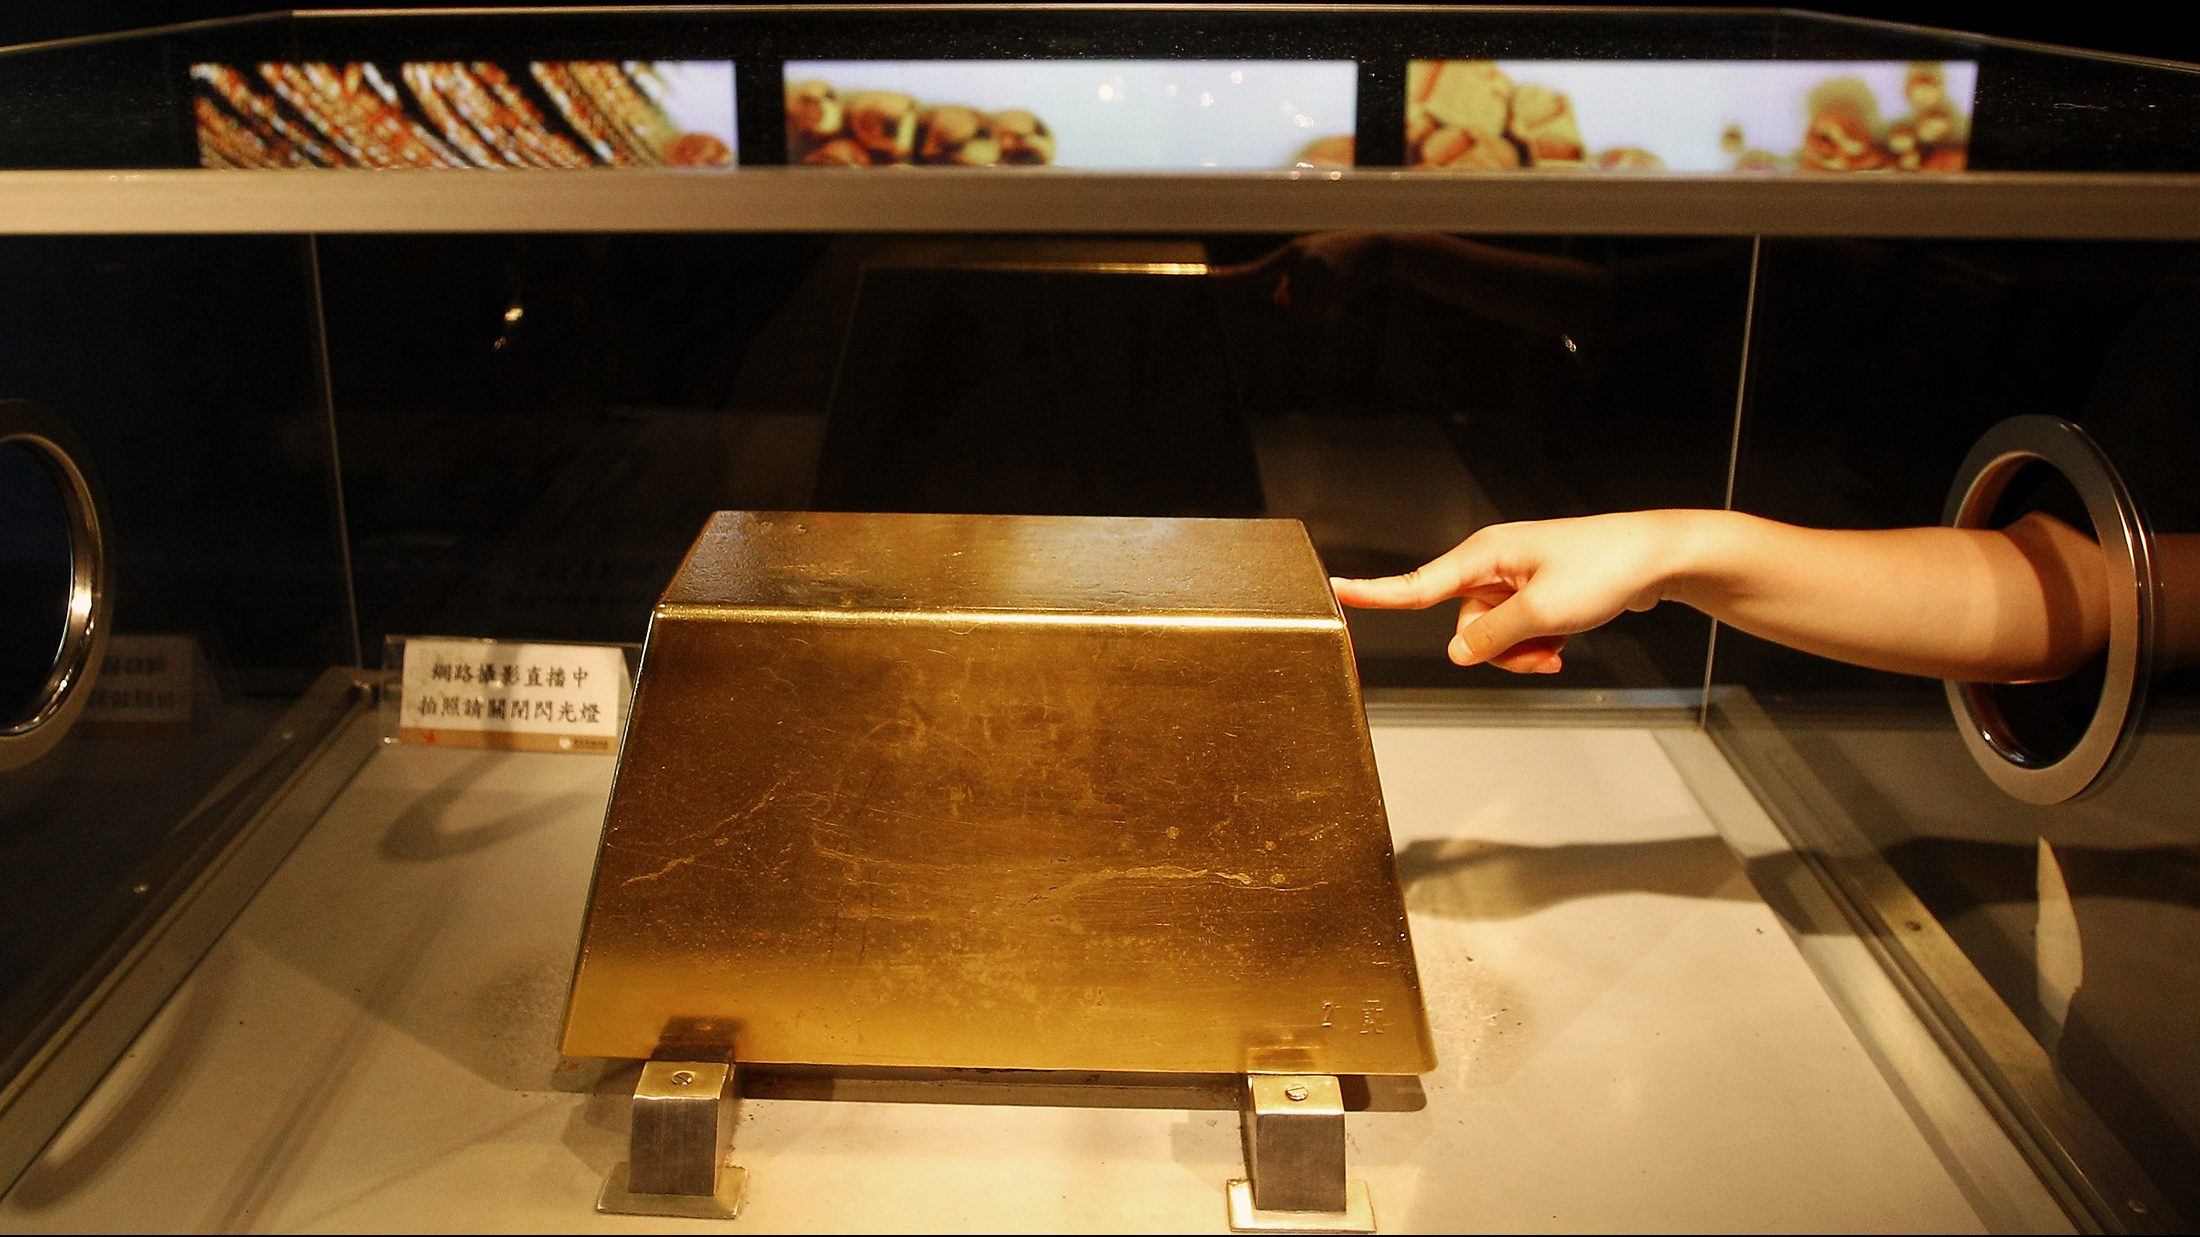 A visitor touches a 220 kg (485 lbs.) gold bar, worth around $12.8 million at today's price, on display at the Jinguashi Gold Ecological Park in Xinbei city September 16, 2011. The Jinguashi Gold Ecological Park said the gold bar is Taiwan's largest.